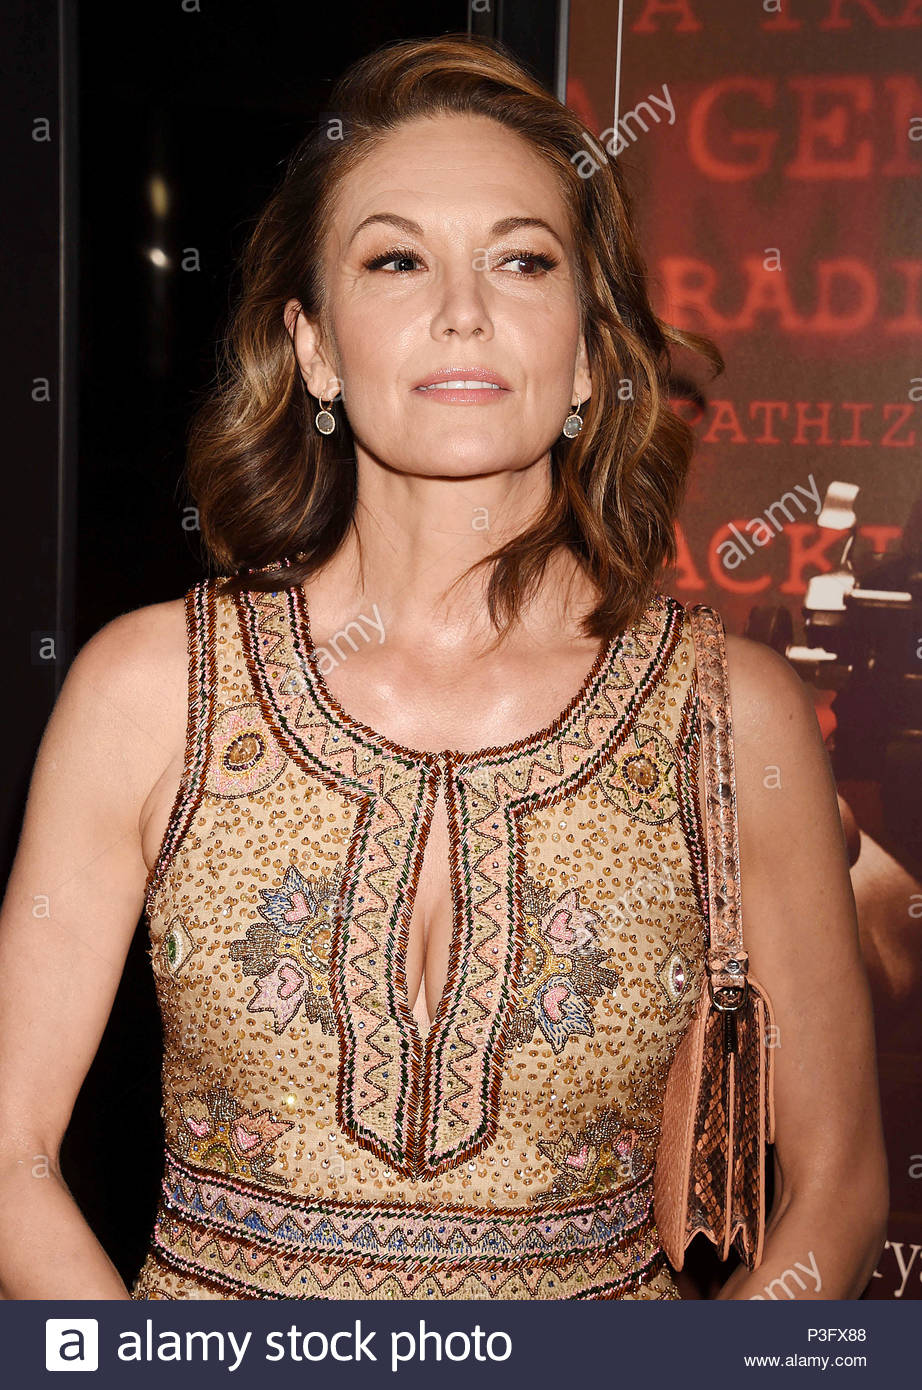 Celebrites Diane Lane nude (93 photo), Topless, Leaked, Boobs, cleavage 2015